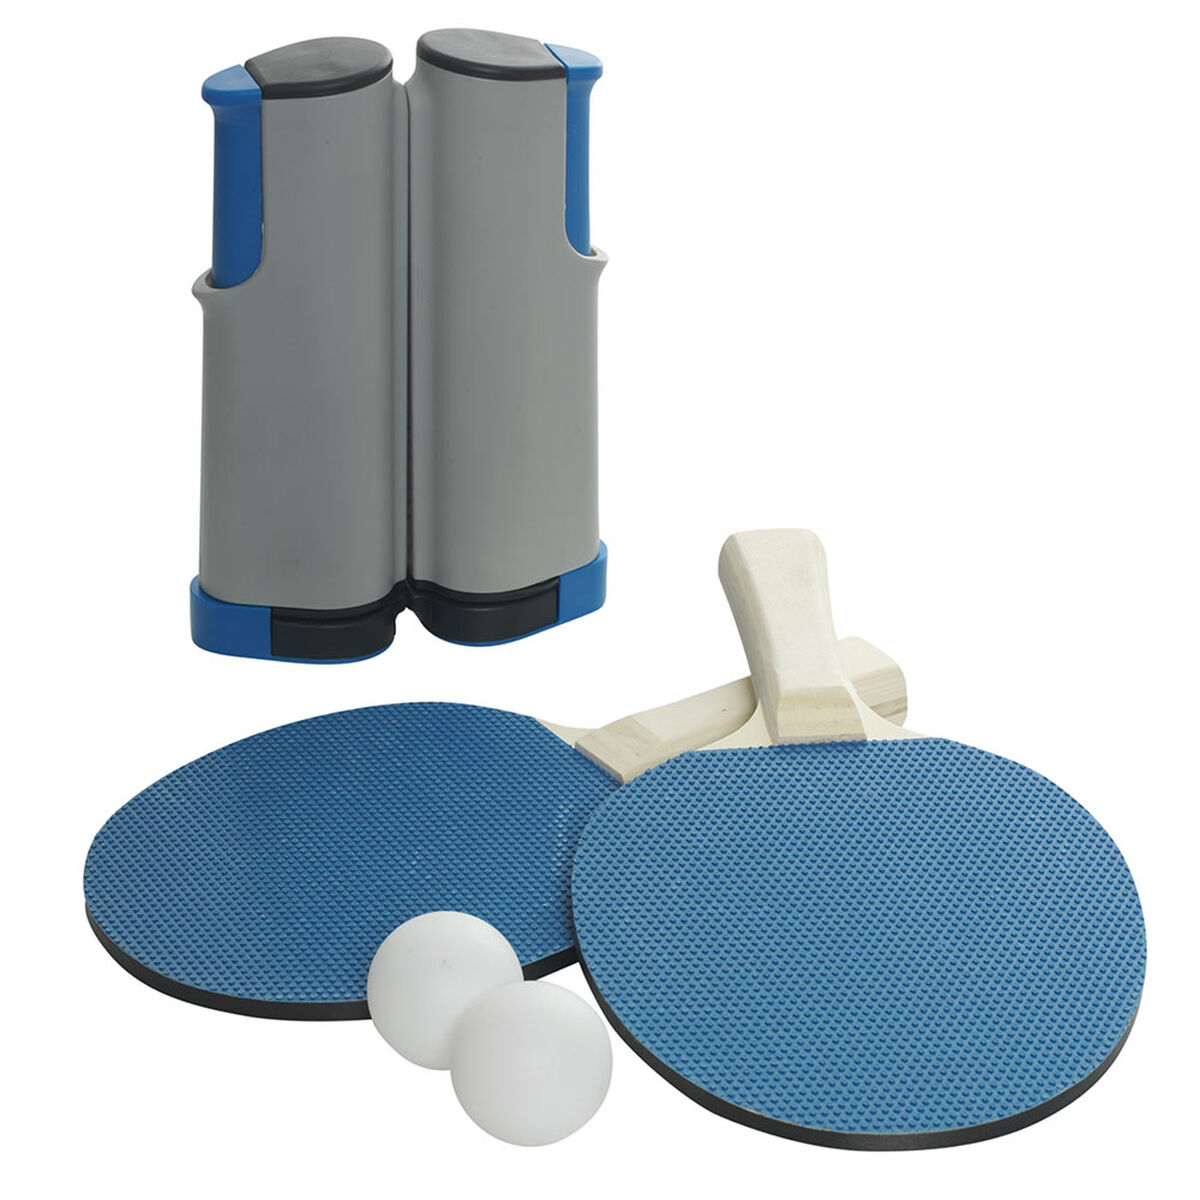 Set Malla De Tennis De Mesa Gamepower Portatil